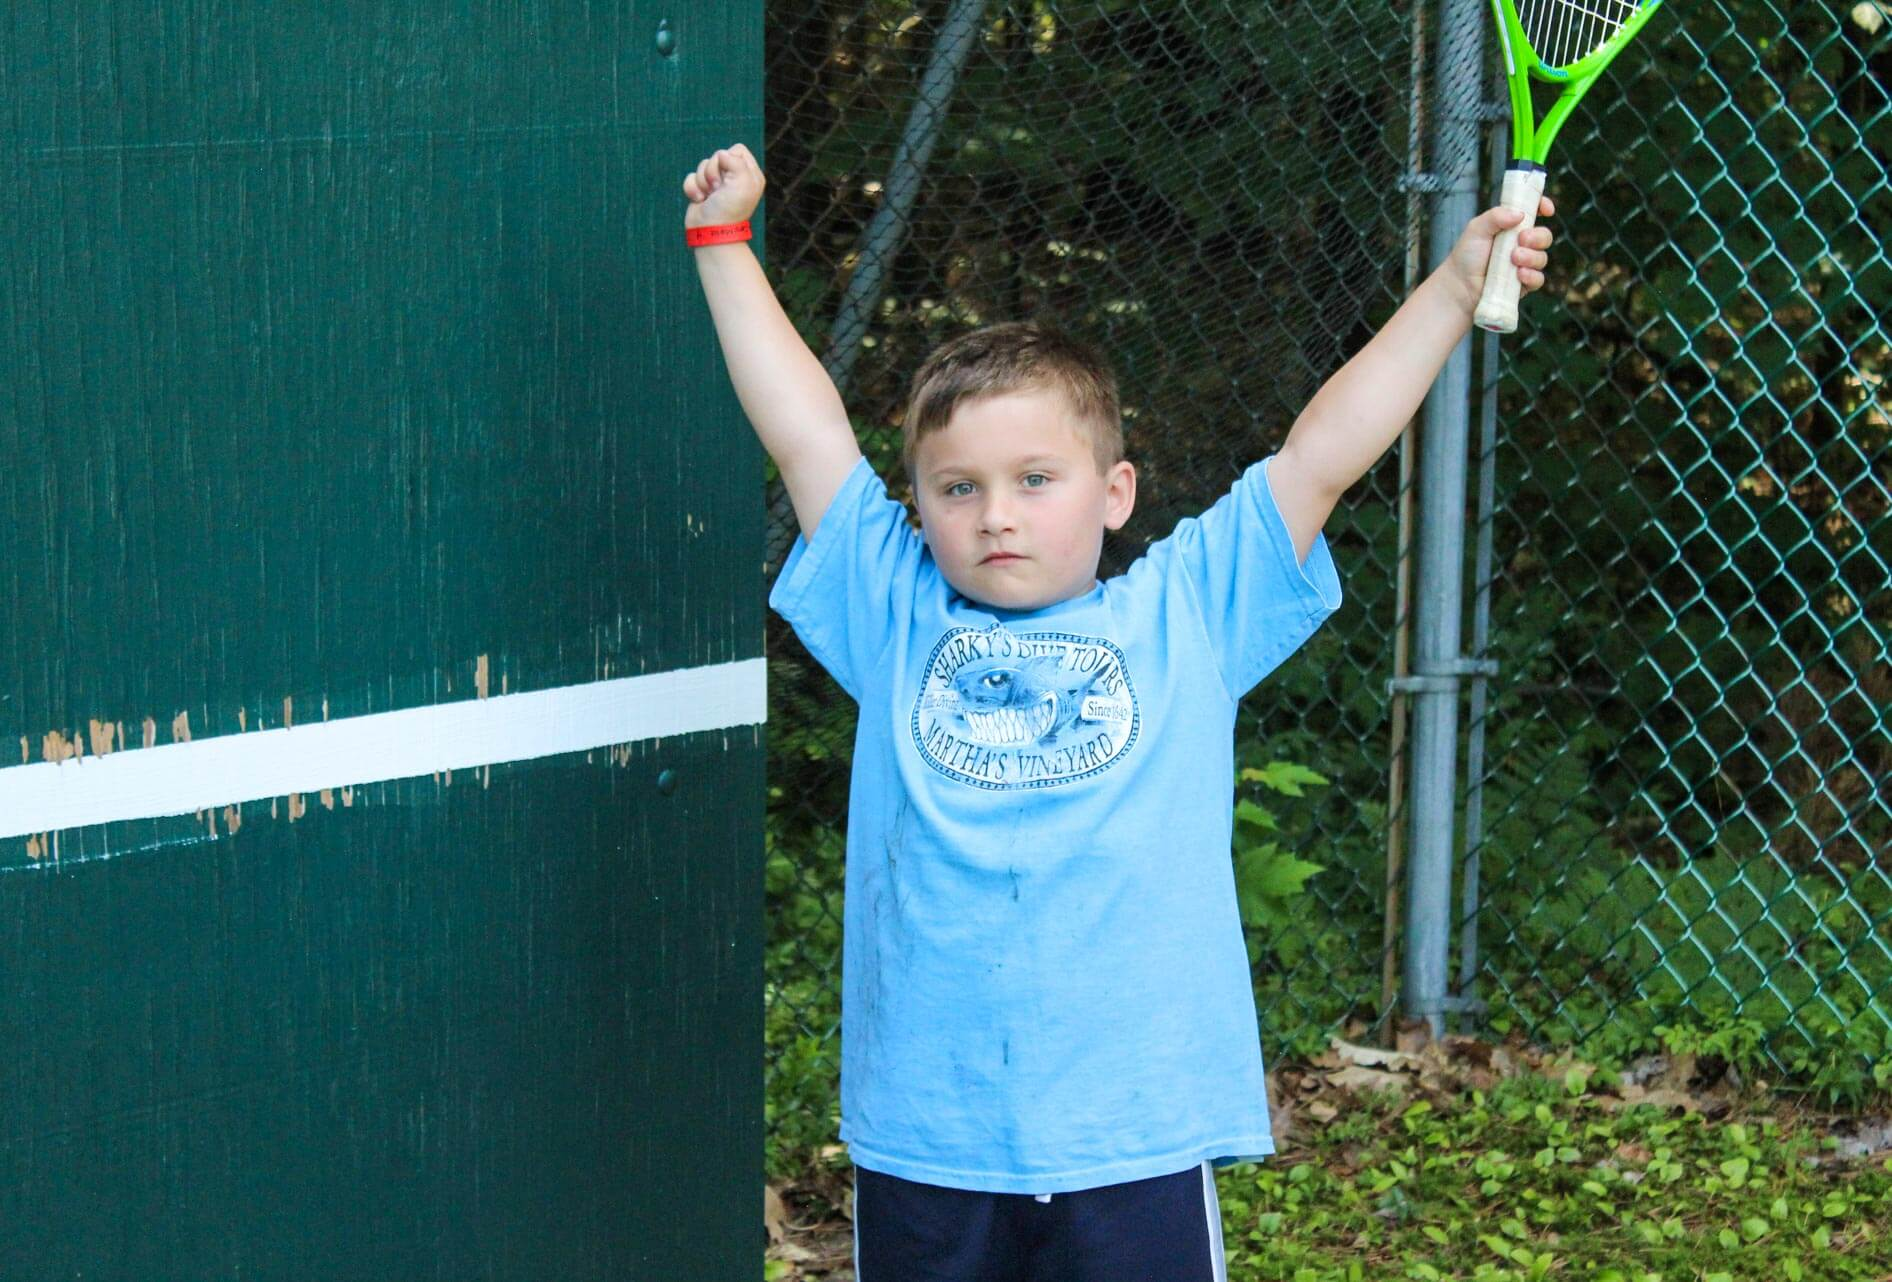 Young camper stretches while holding tennis racquet